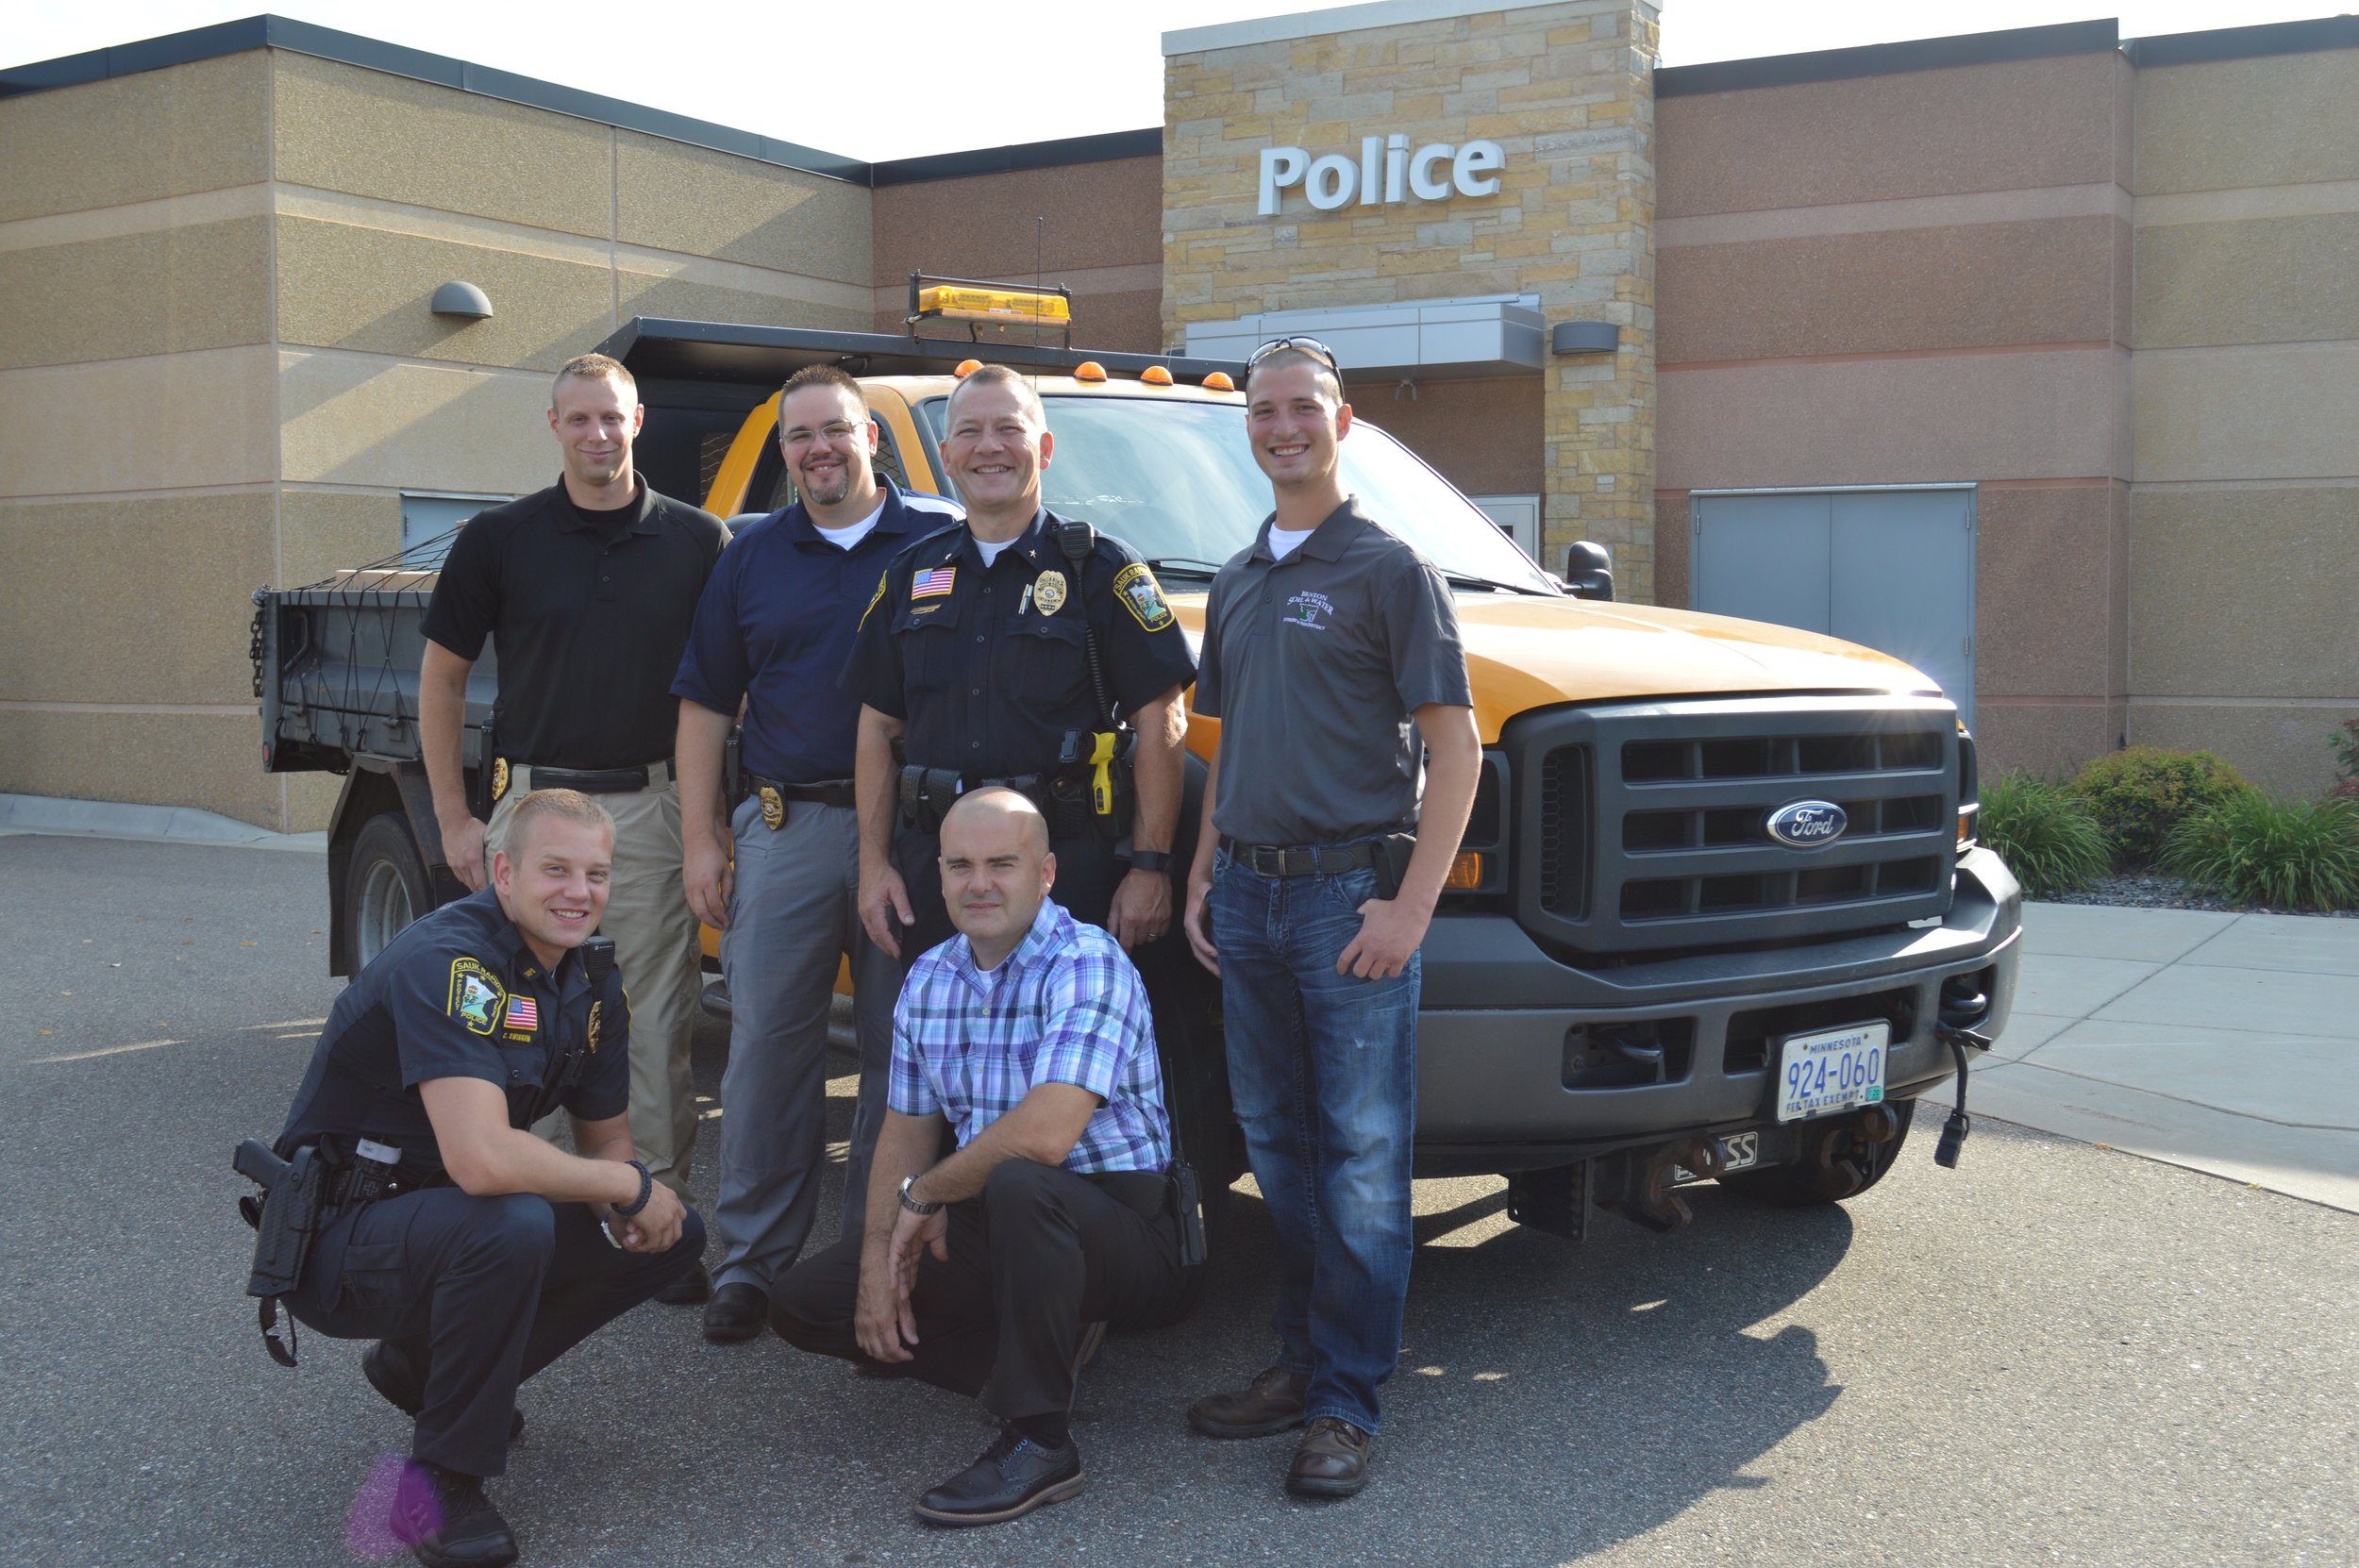 Sauk Rapids Police Officer Charles Wiggum (front, from left) and Sauk Rapids Police Detective Dan Falk; (back, from left) Sauk Rapids Police Officer Nicholas Bogart, Sauk Rapids Police Investigator Sean Gales, Sauk Rapids Police Chief Perry Beise and Benton Soil and Water Conservation District Watershed Technician Travis Janson stand in front of the Sauk Rapids Police Department Aug. 8. The officers prepared boxes of prescription medication for transport to the Pope/Douglas Solid Waste Management facility in Alexandria.    Photo Credit to Benton County News